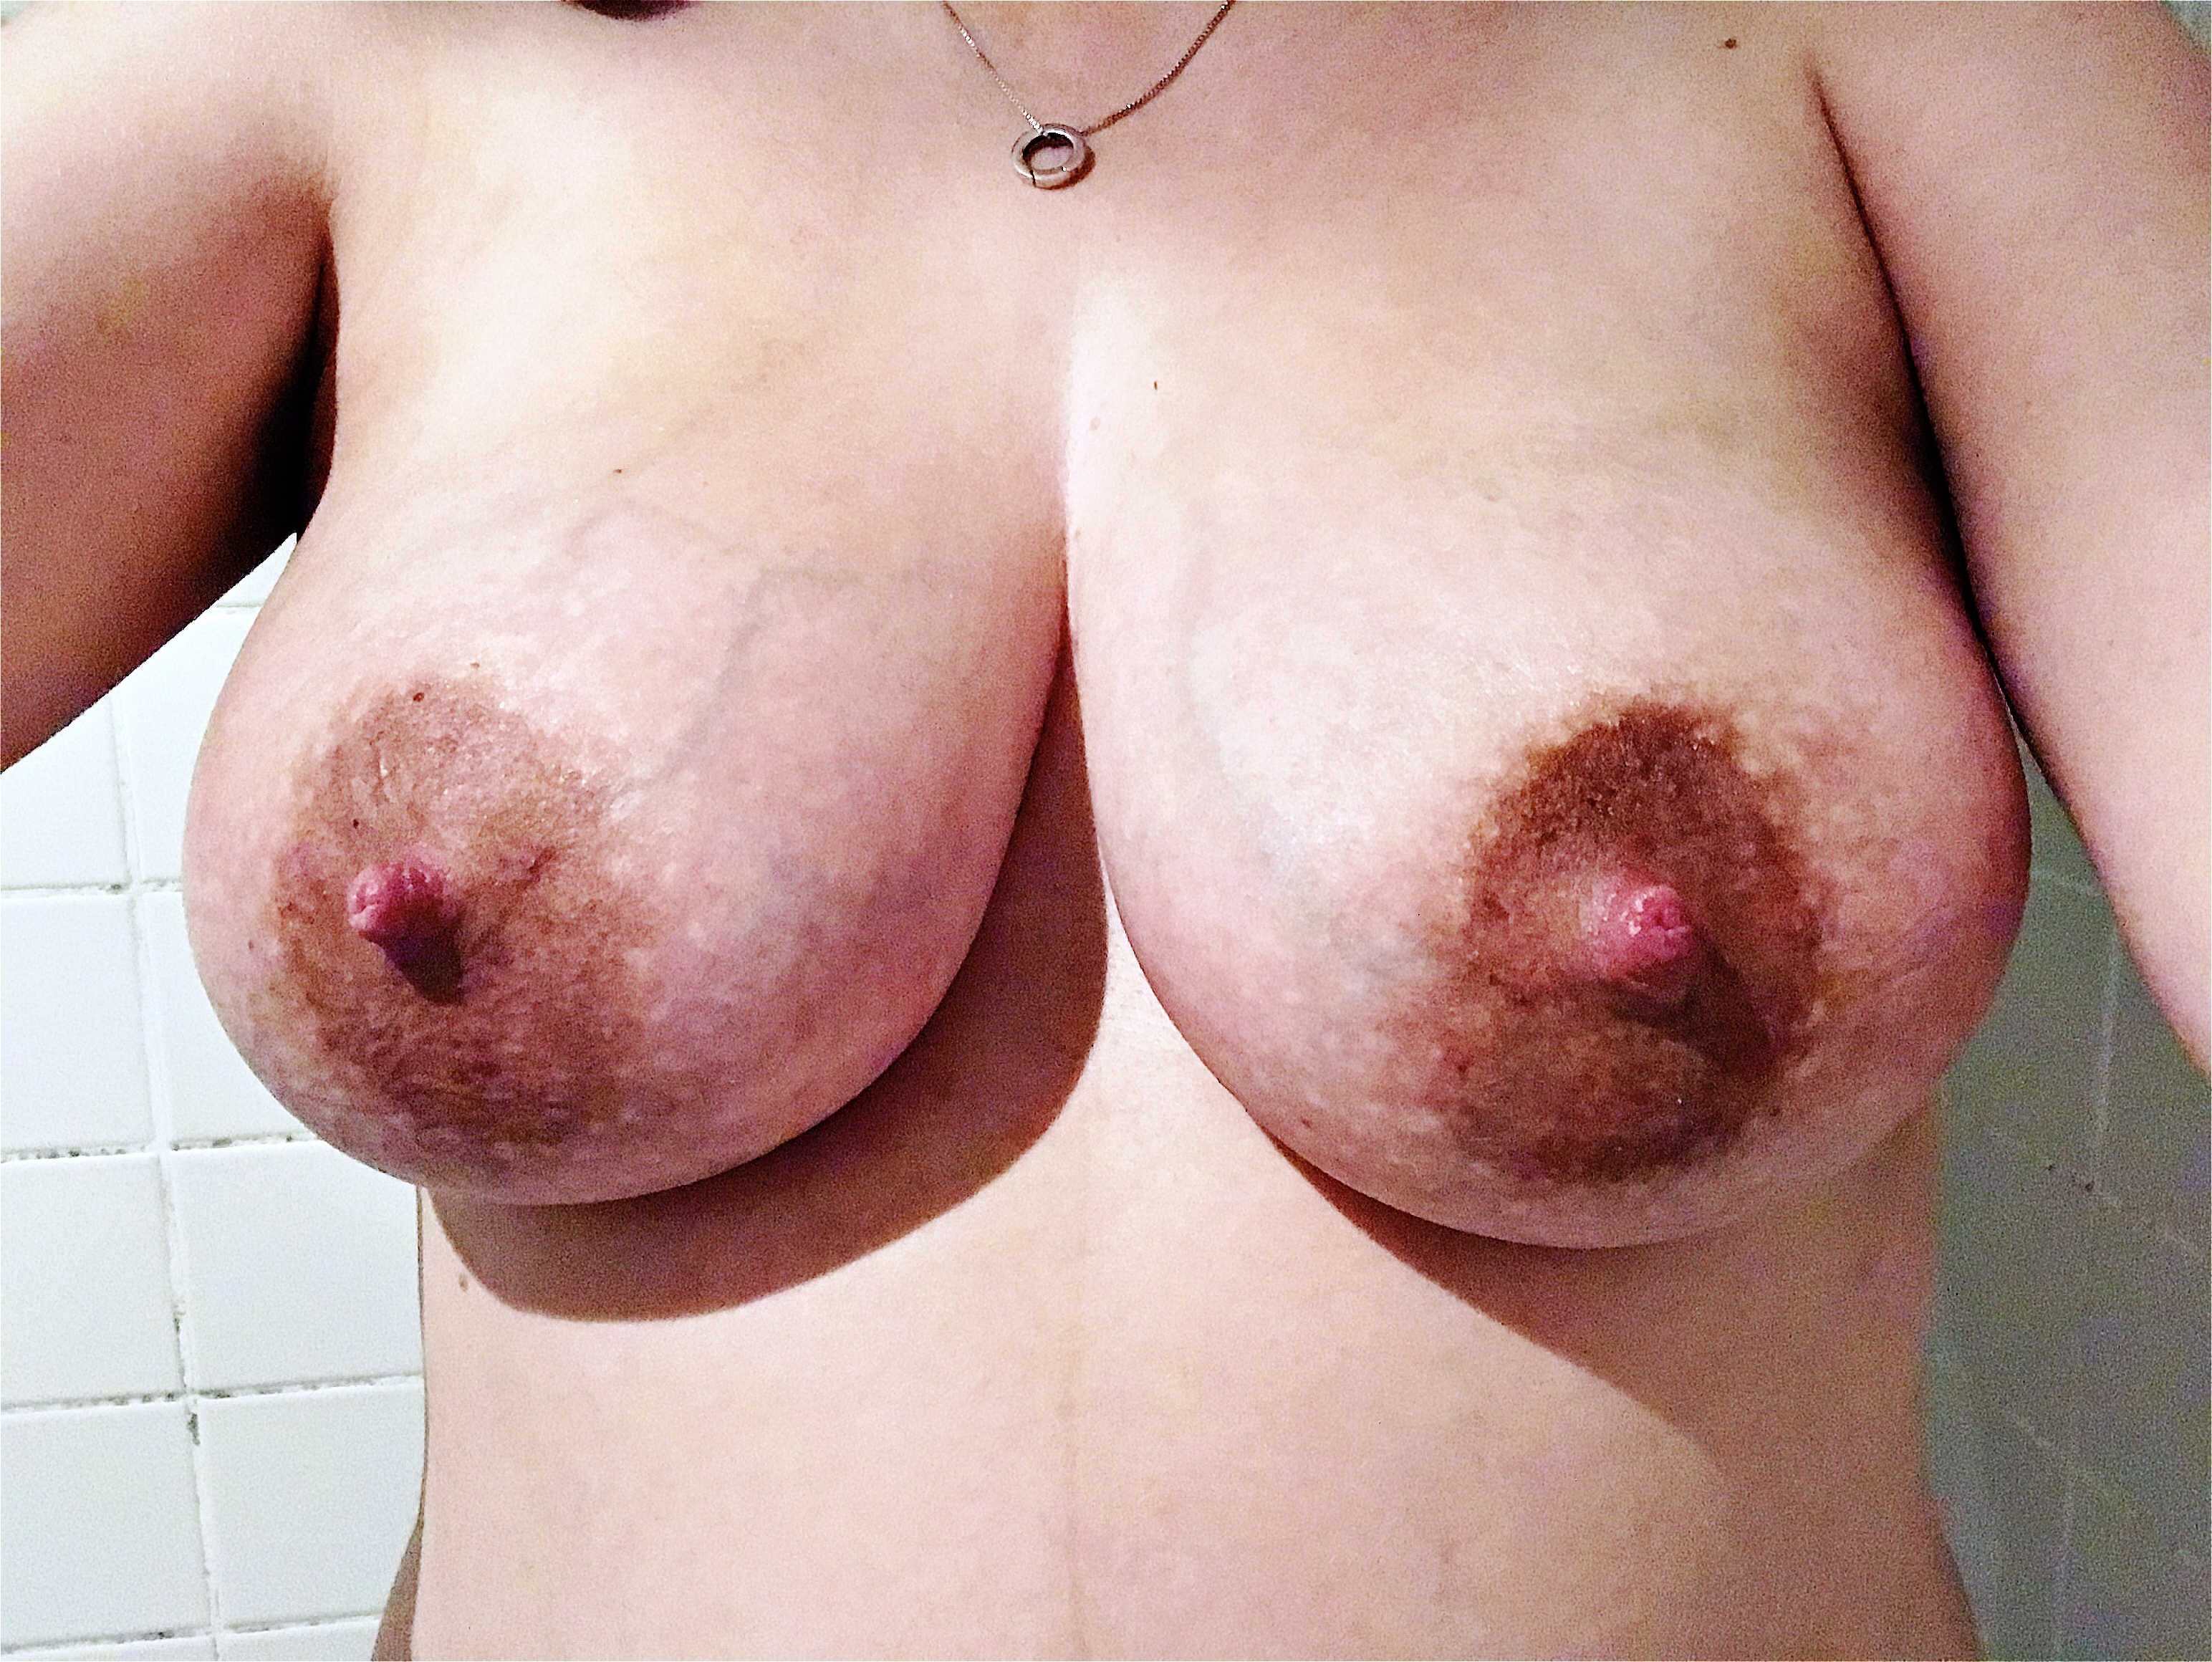 An image of my breasts, standing almost directly facing the camera against a white tiled background